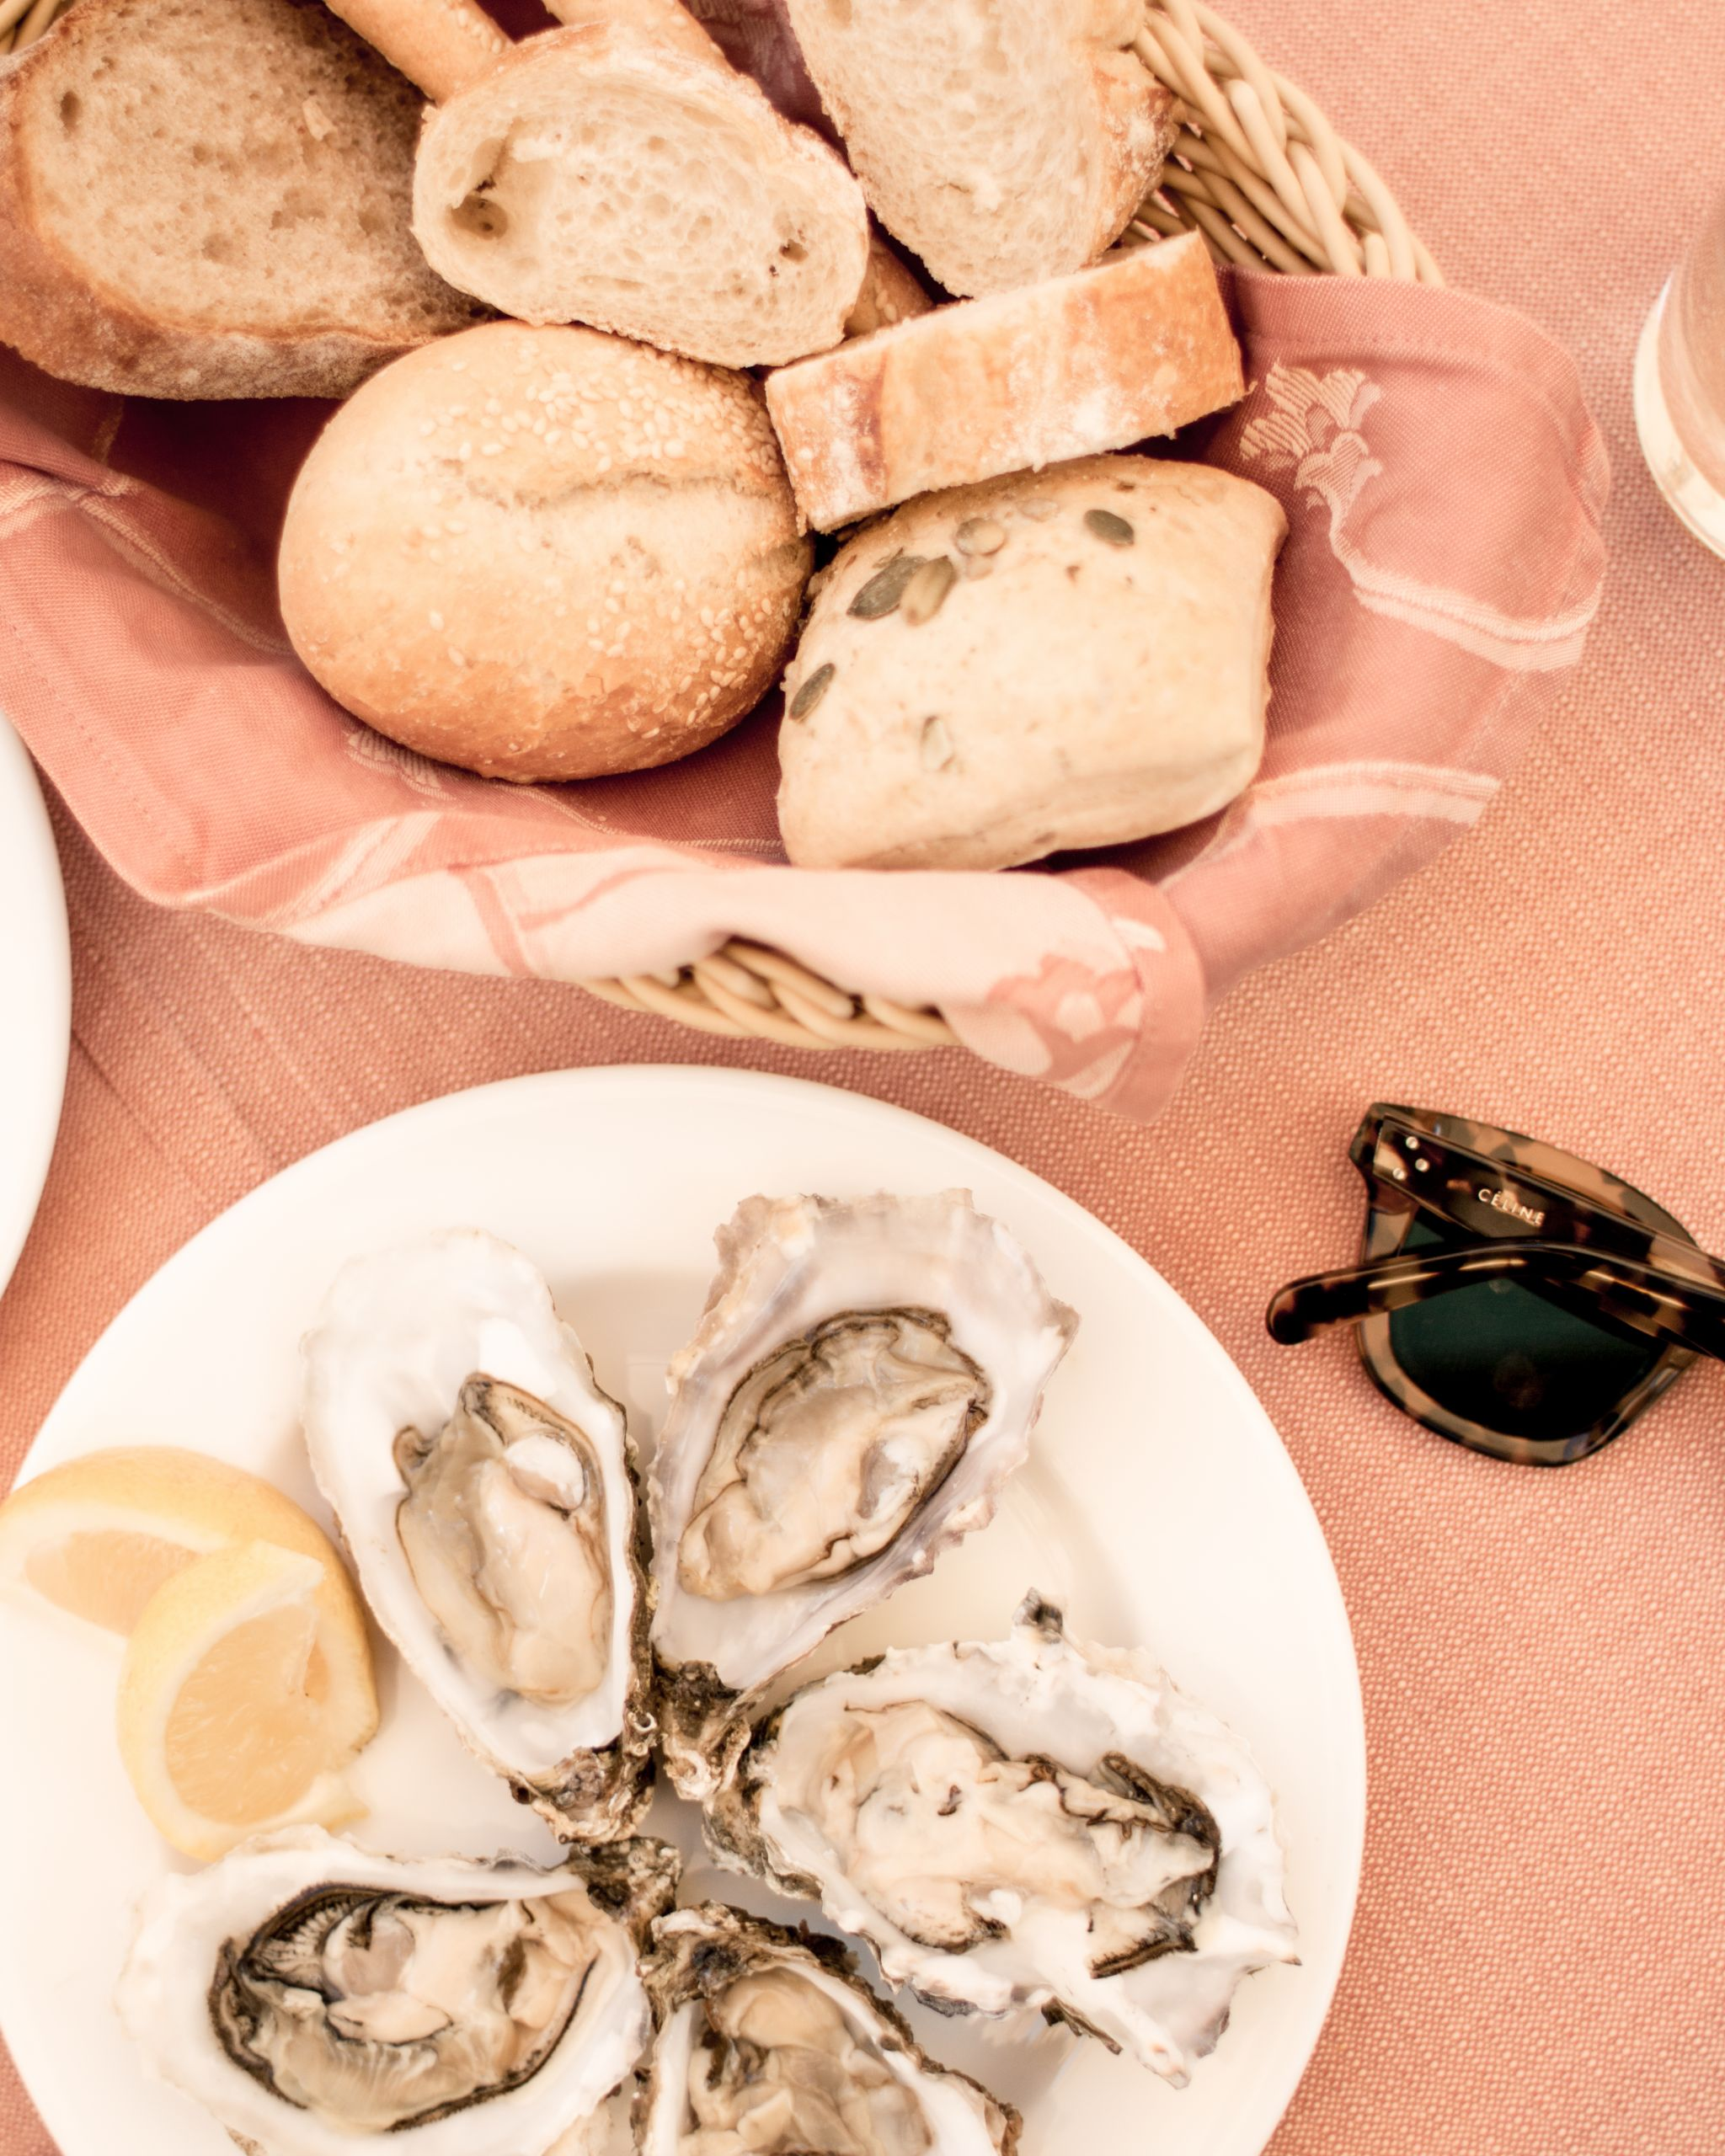 Adler Dolomites Ortisei Italy Hotel Hospitality Brand Photography Oyster Afternoon Nibbles